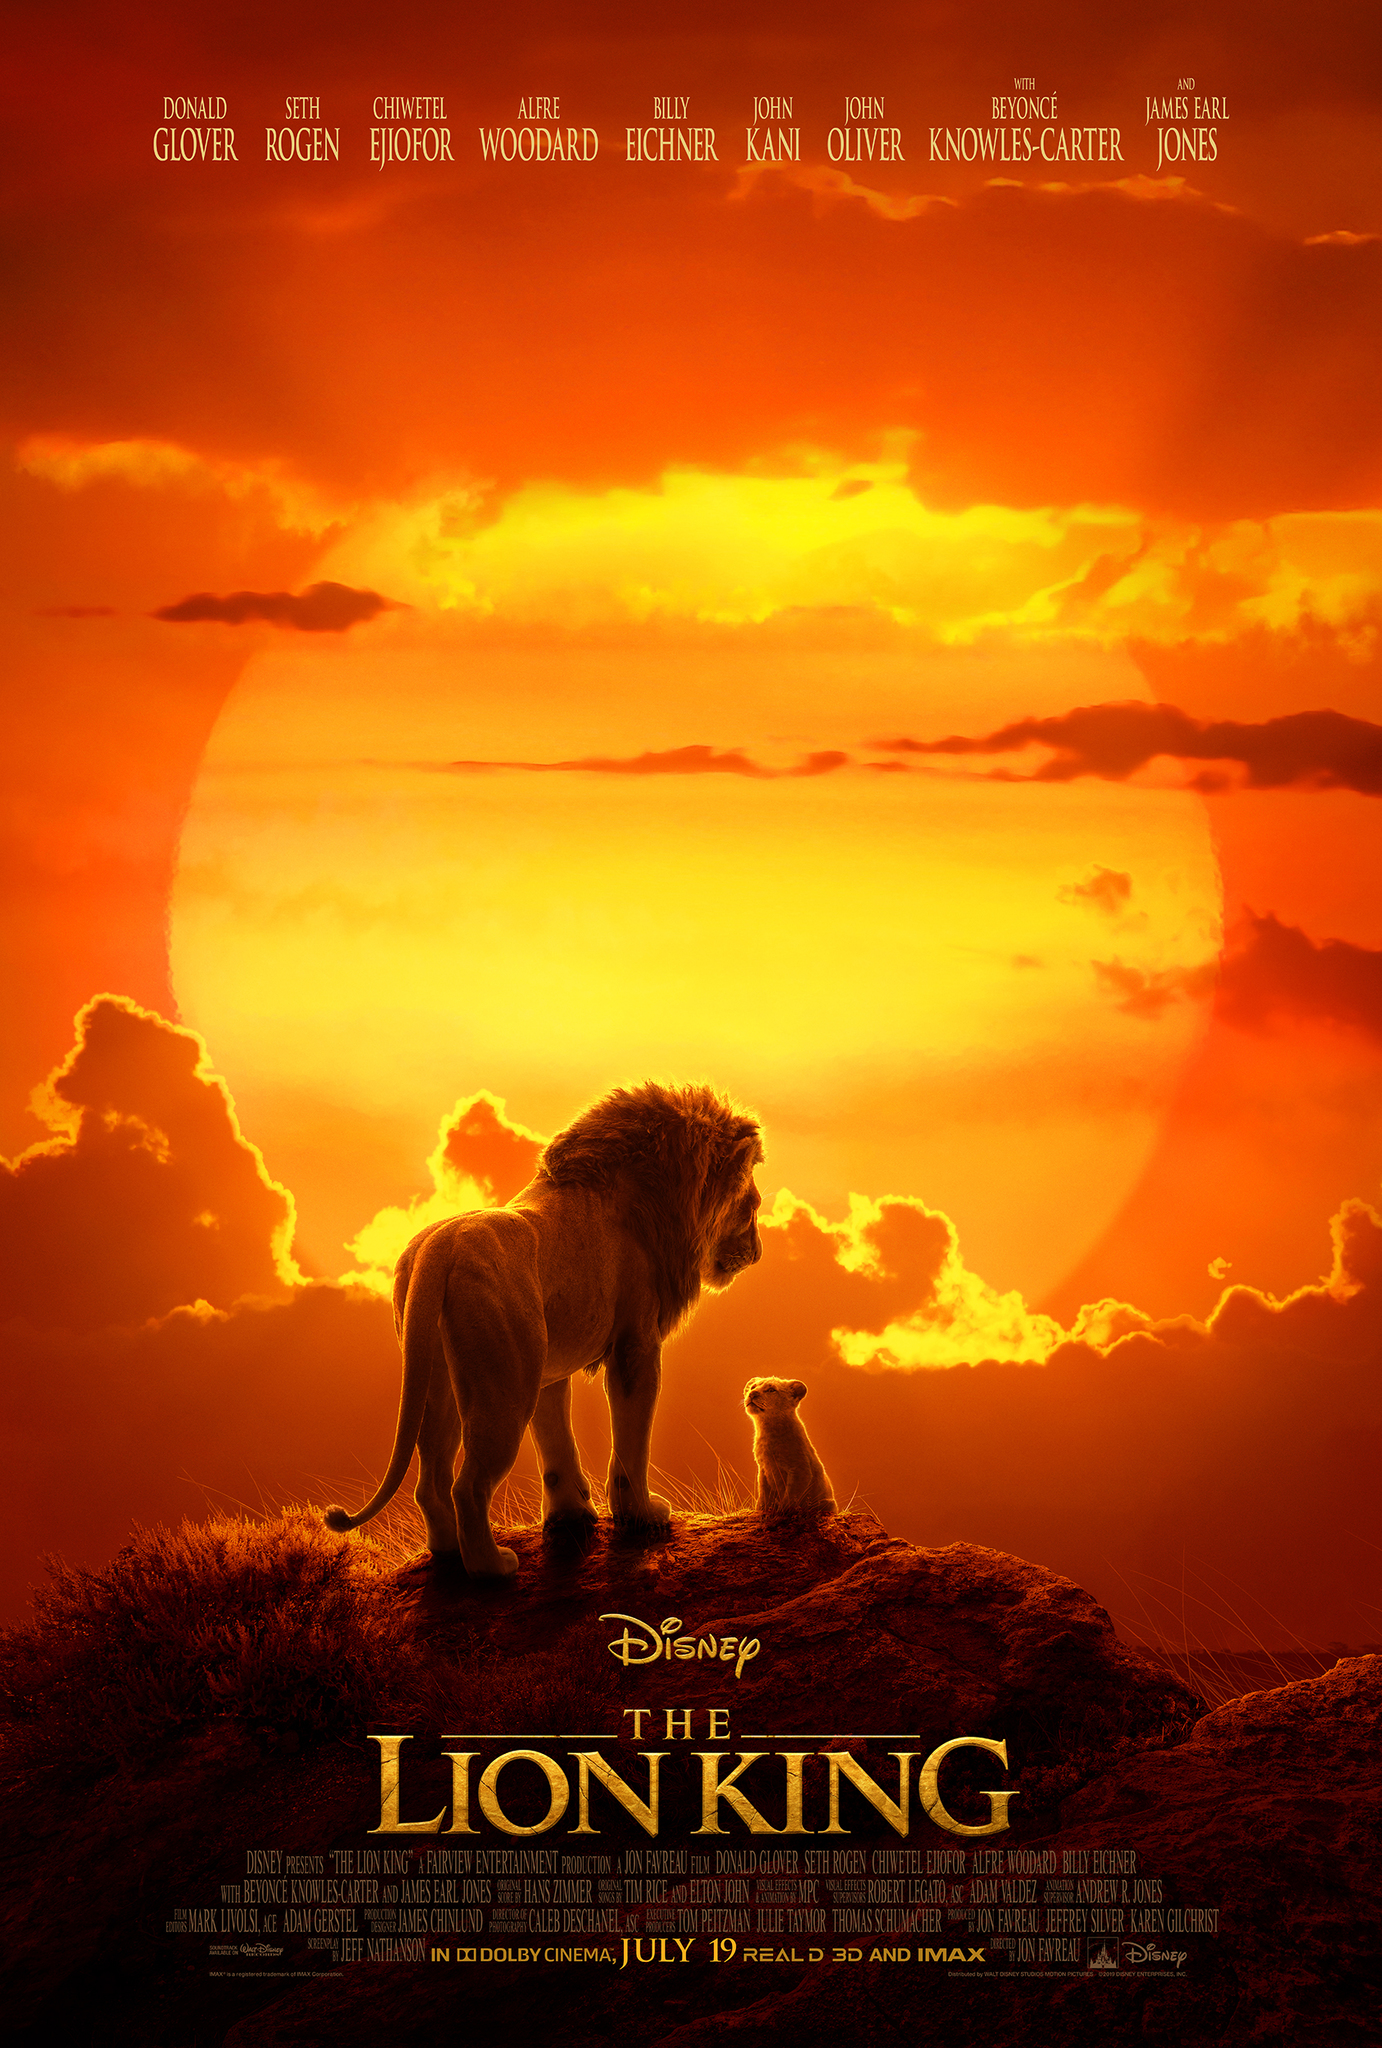 The Lion King (2019) BluRay 480p, 720p, 1080p & 4K-2160p